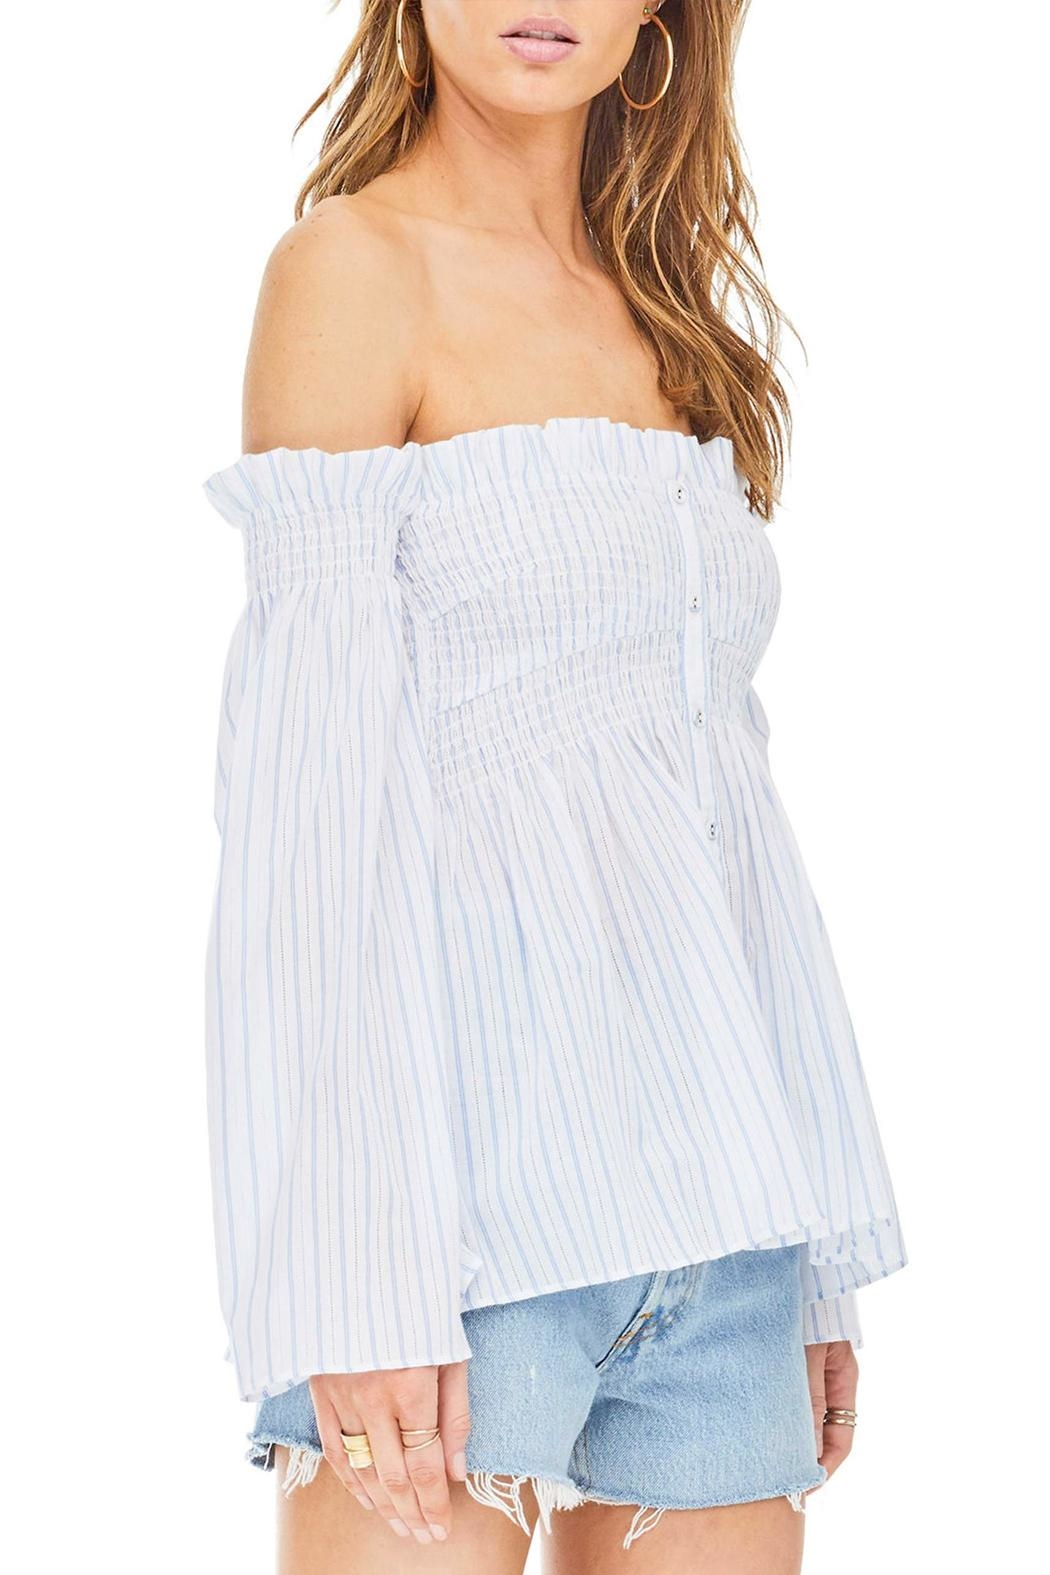 ASTR Shelby Smocked Top - Front Full Image